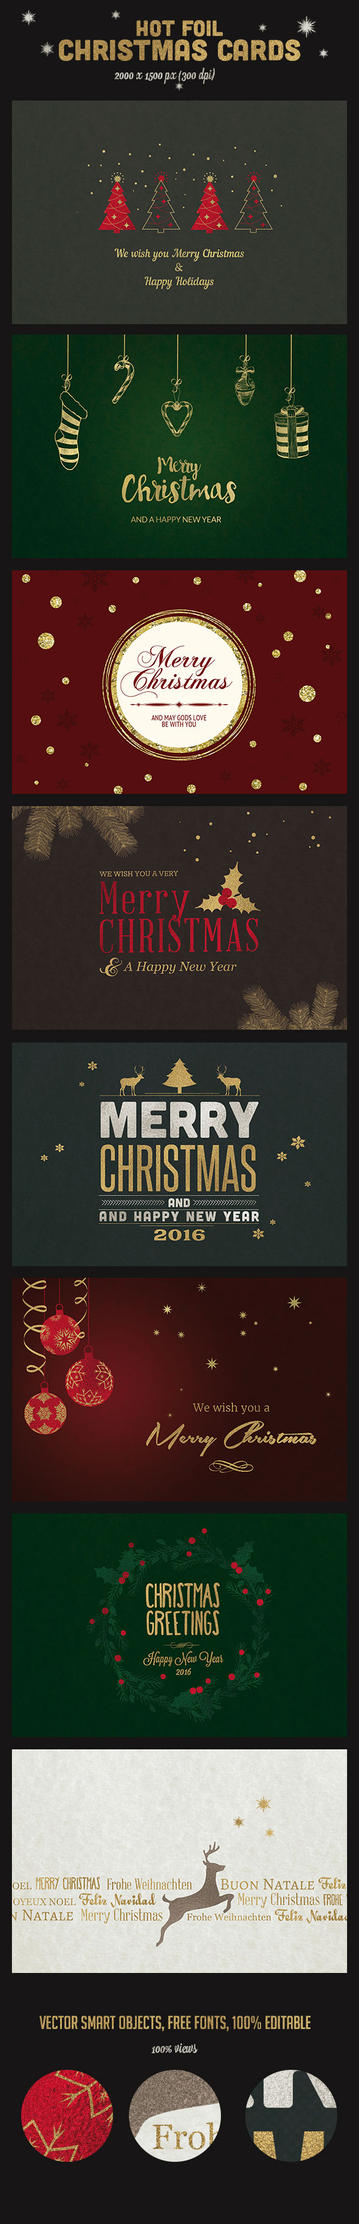 9 Hot Foil Christmas Backgrounds / Card by imagearea